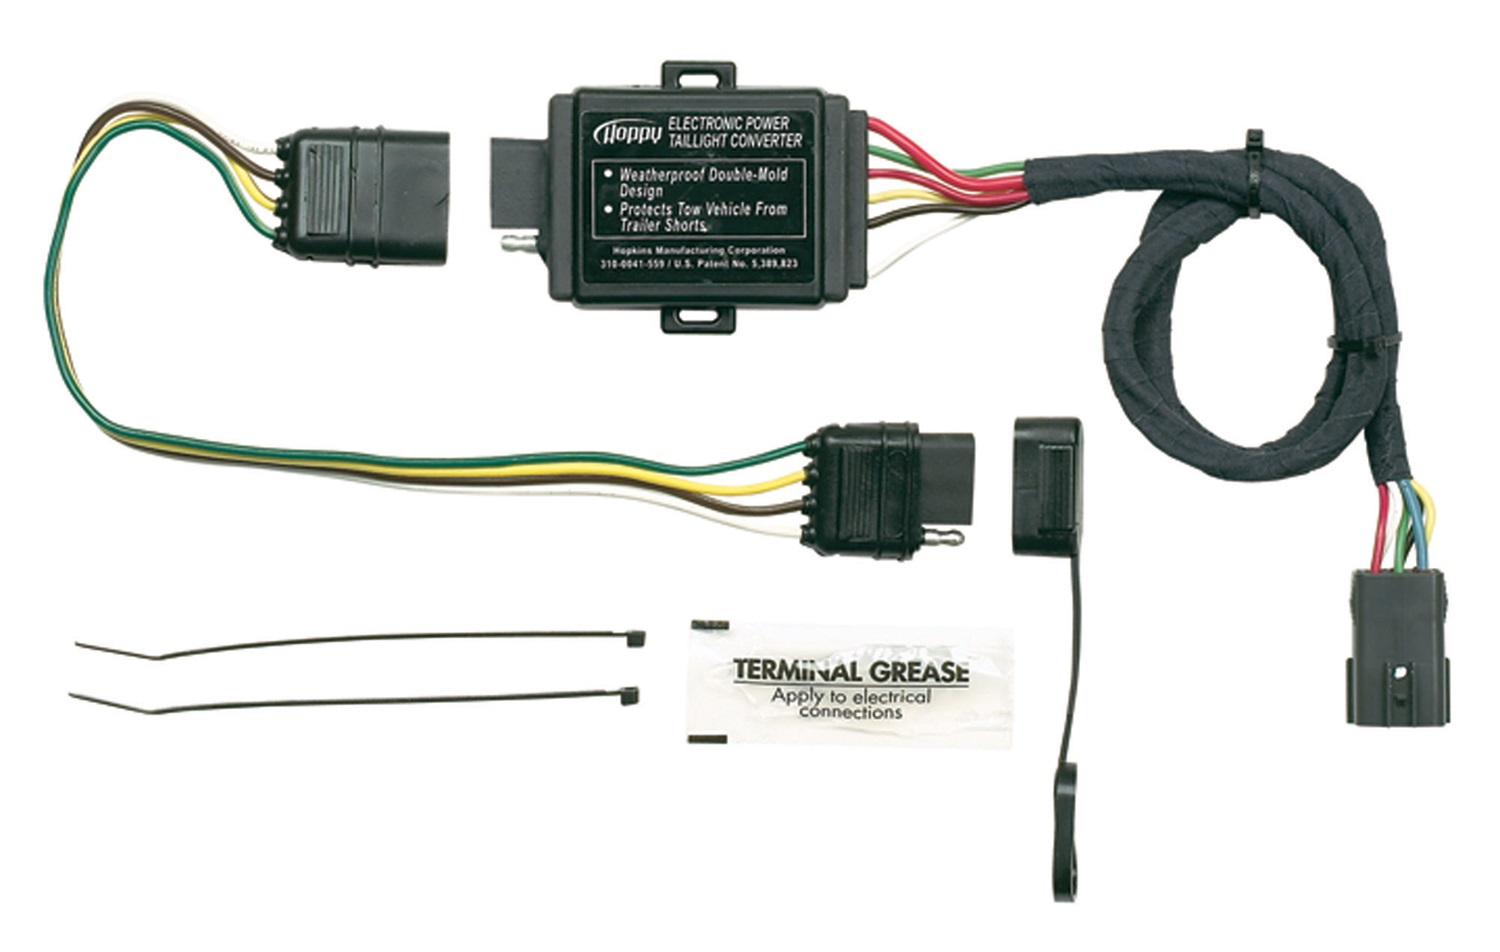 2009 Rav4 Trailer Wiring Harness Kit Trusted Diagram 20062012 Toyota Curt T Connector 56165 Lights